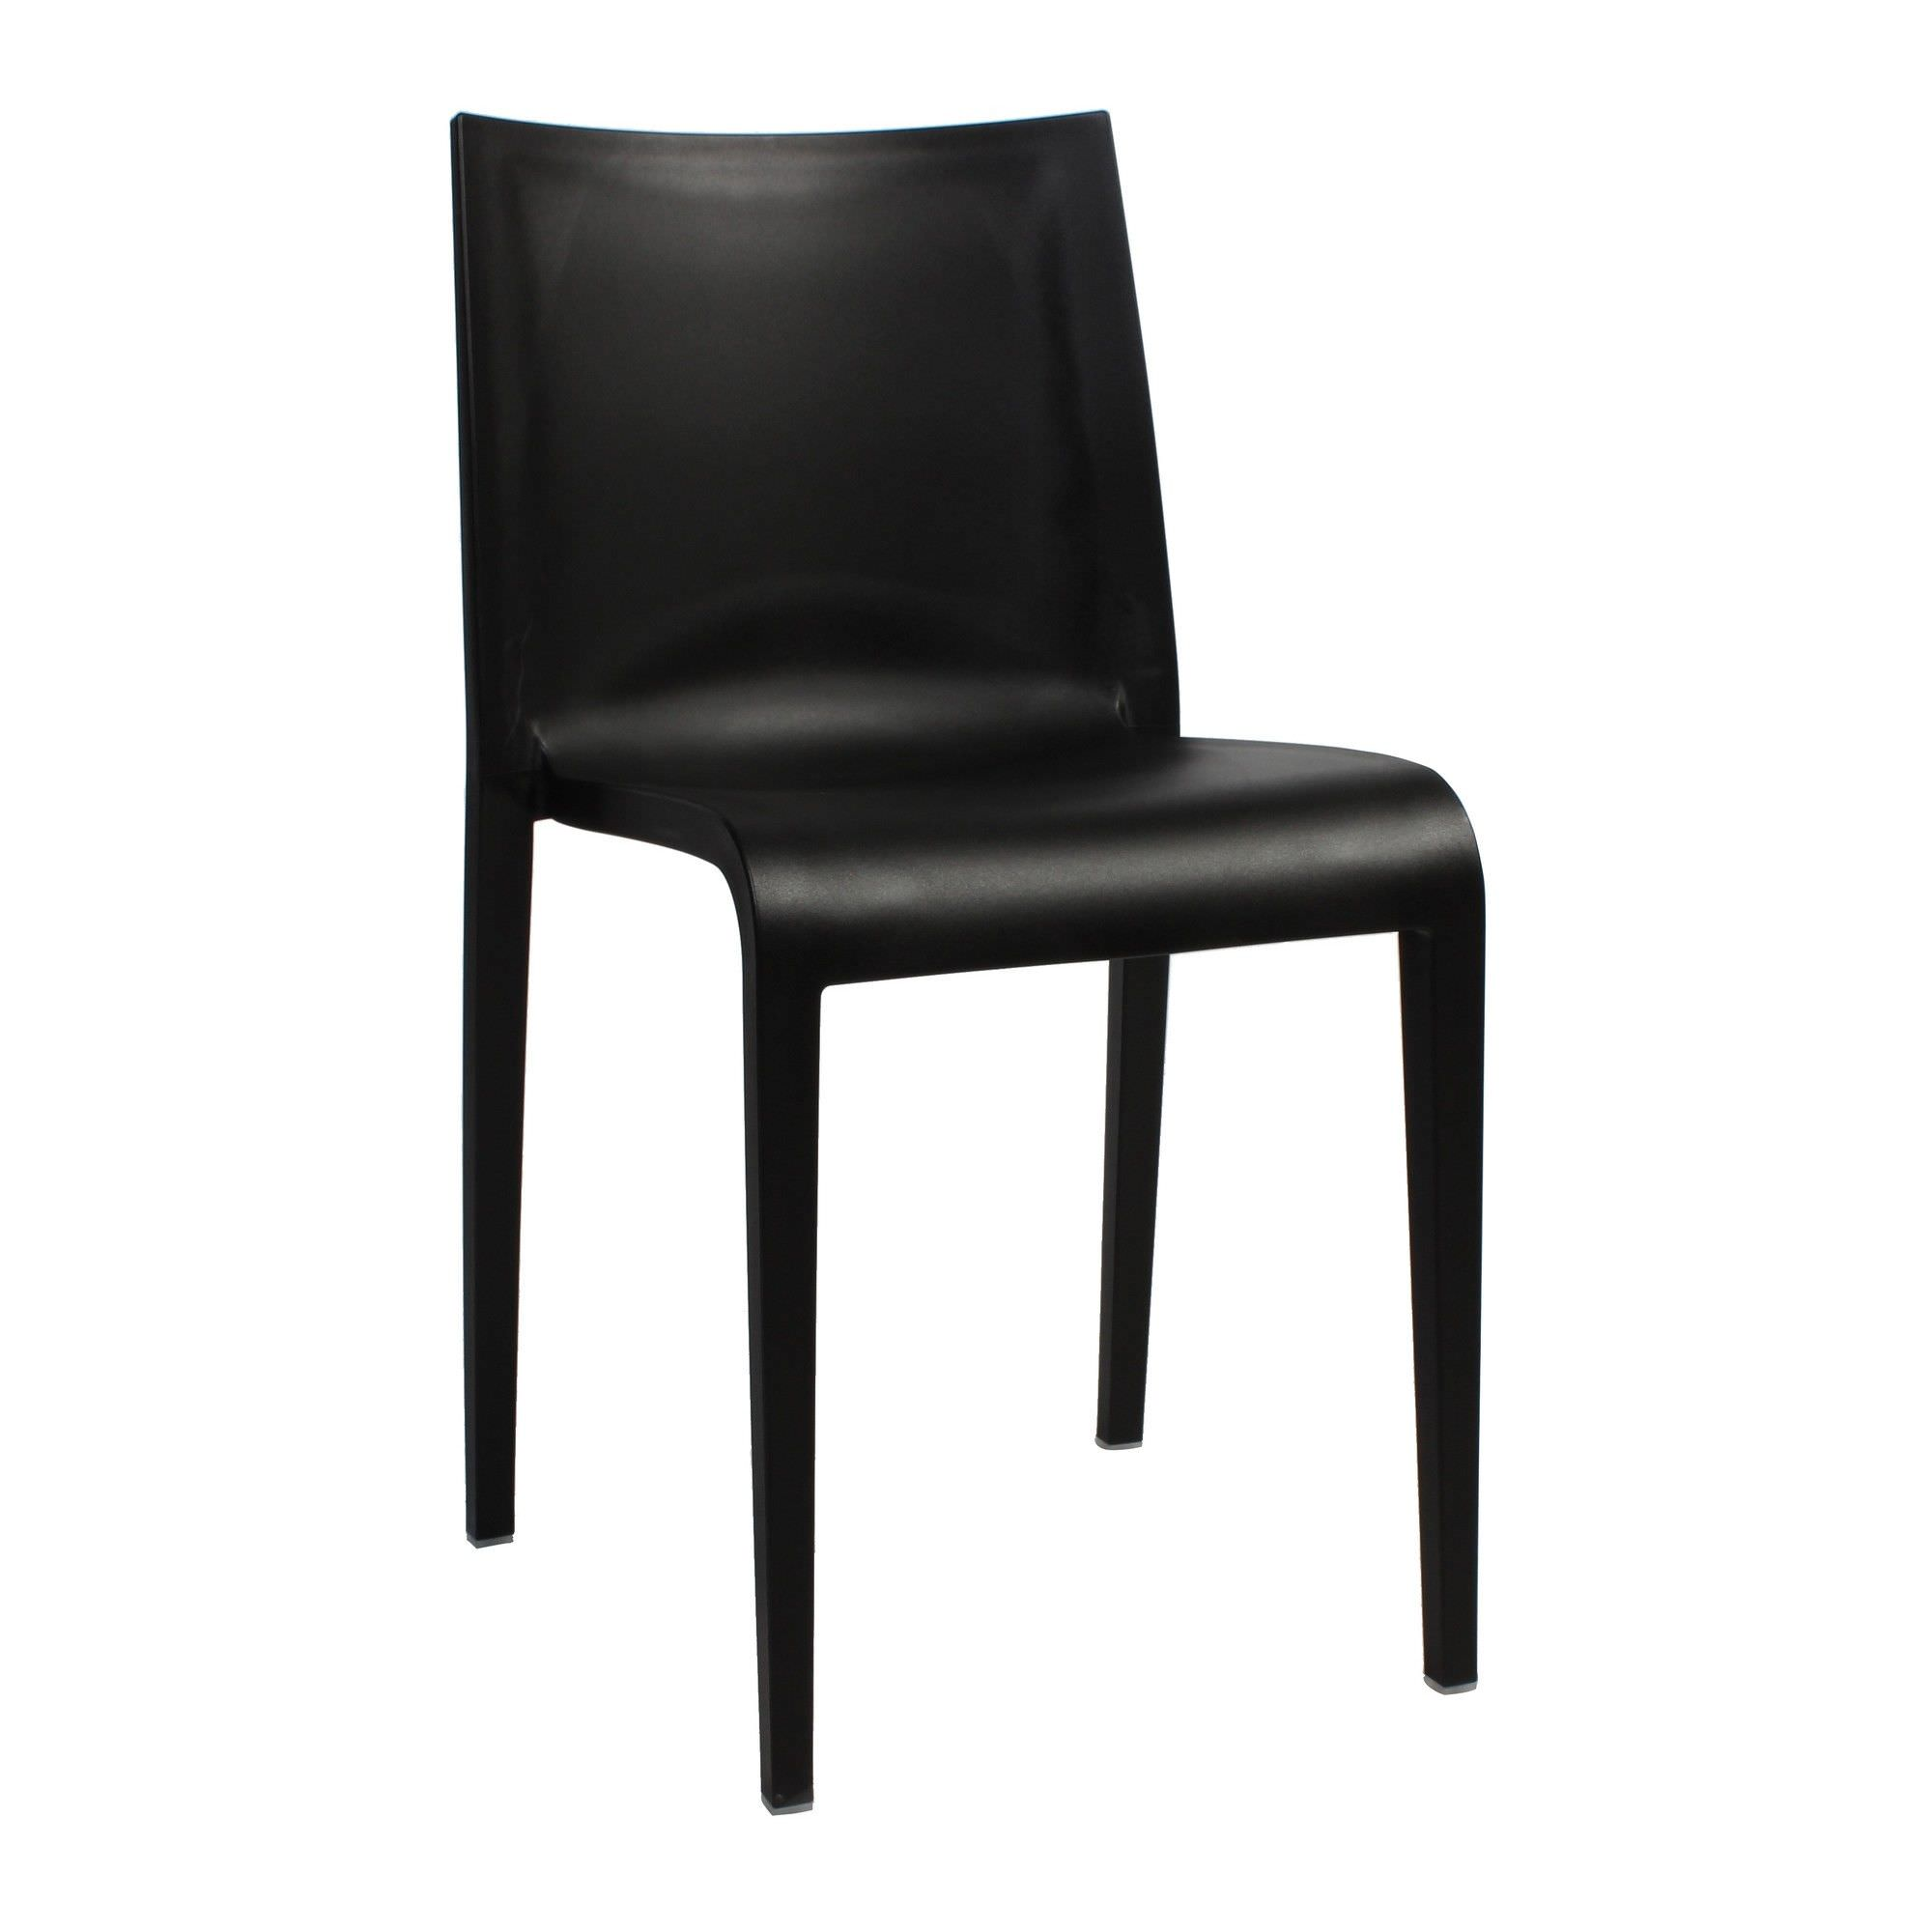 commercial outdoor dining furniture. Nassau Italian Made Commercial Grade Indoor/Outdoor Dining Chair, Black Outdoor Furniture T